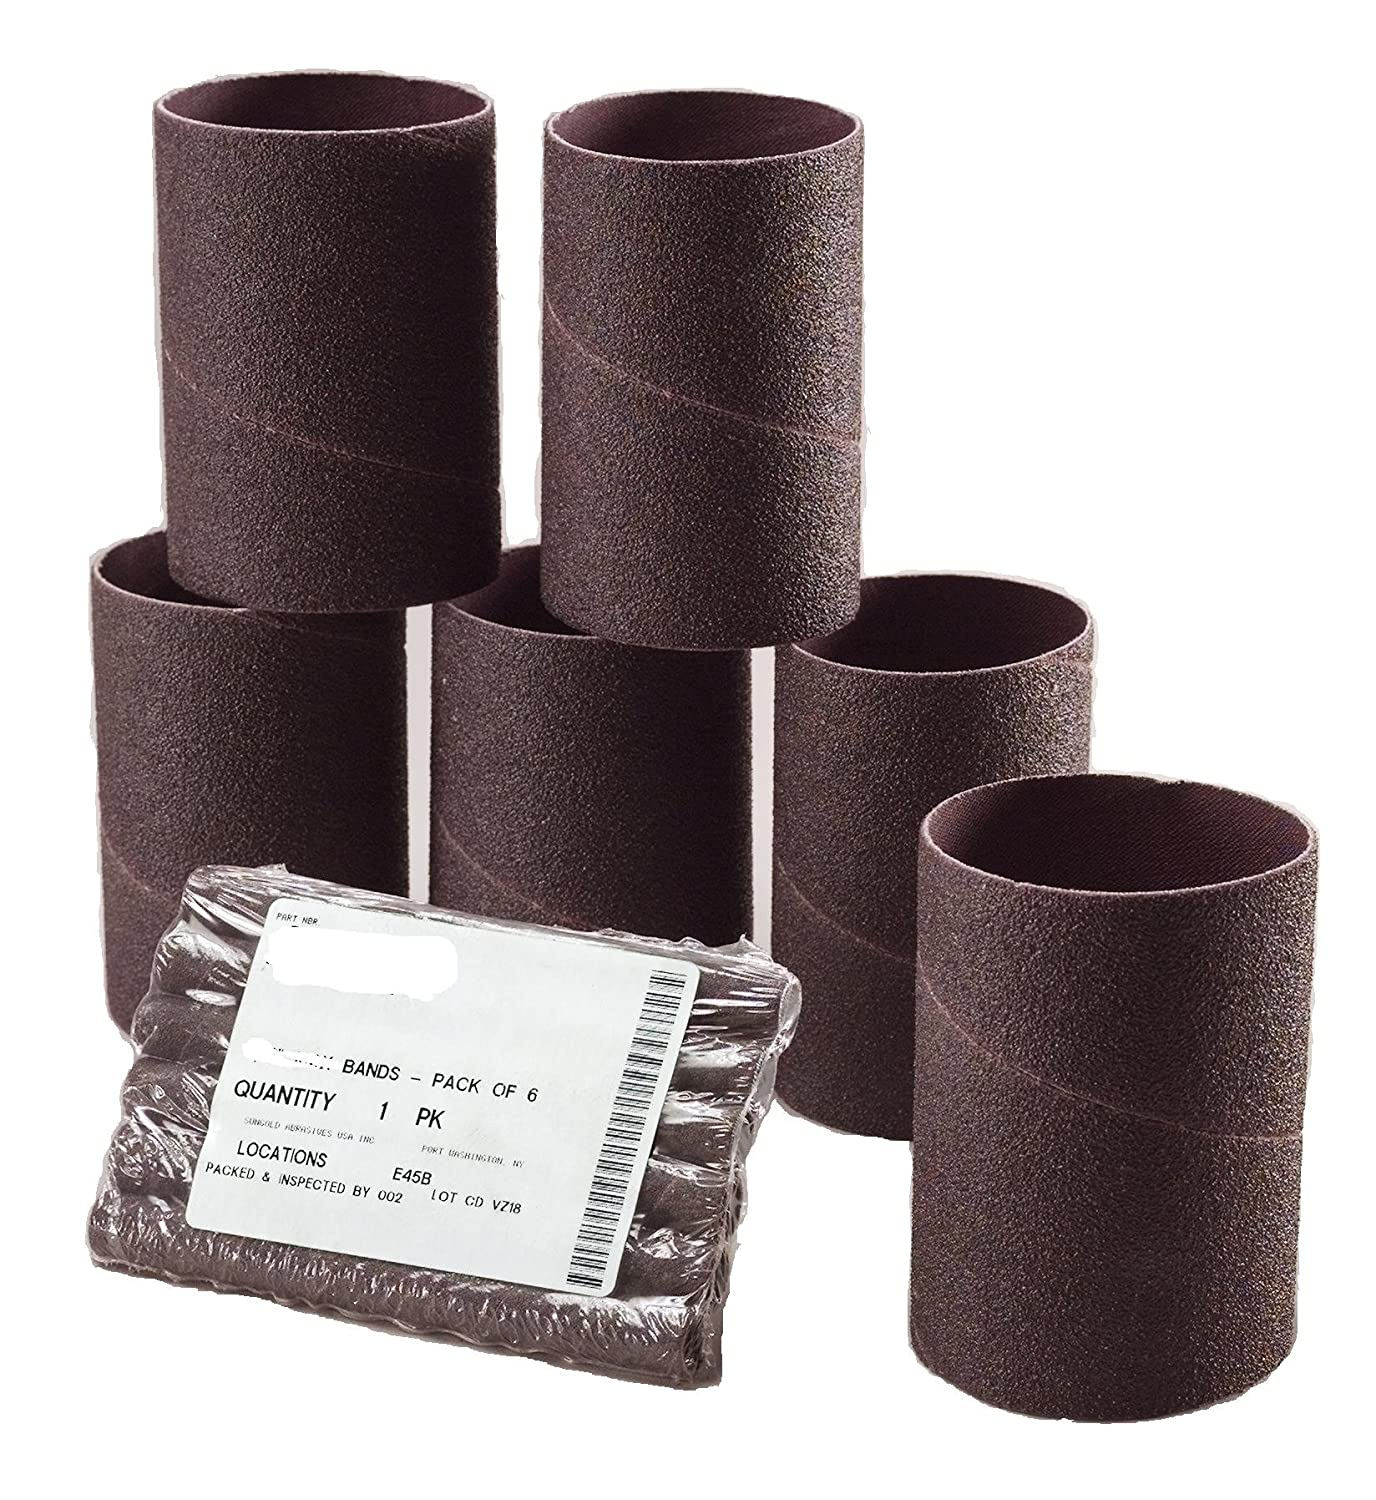 Sungold Abrasives 454078 Spiral Bands Sanding Sleeves 2-Inch by 5-5//8-Inch 100 Grit Alumium Oxide Cloth 6-Pack